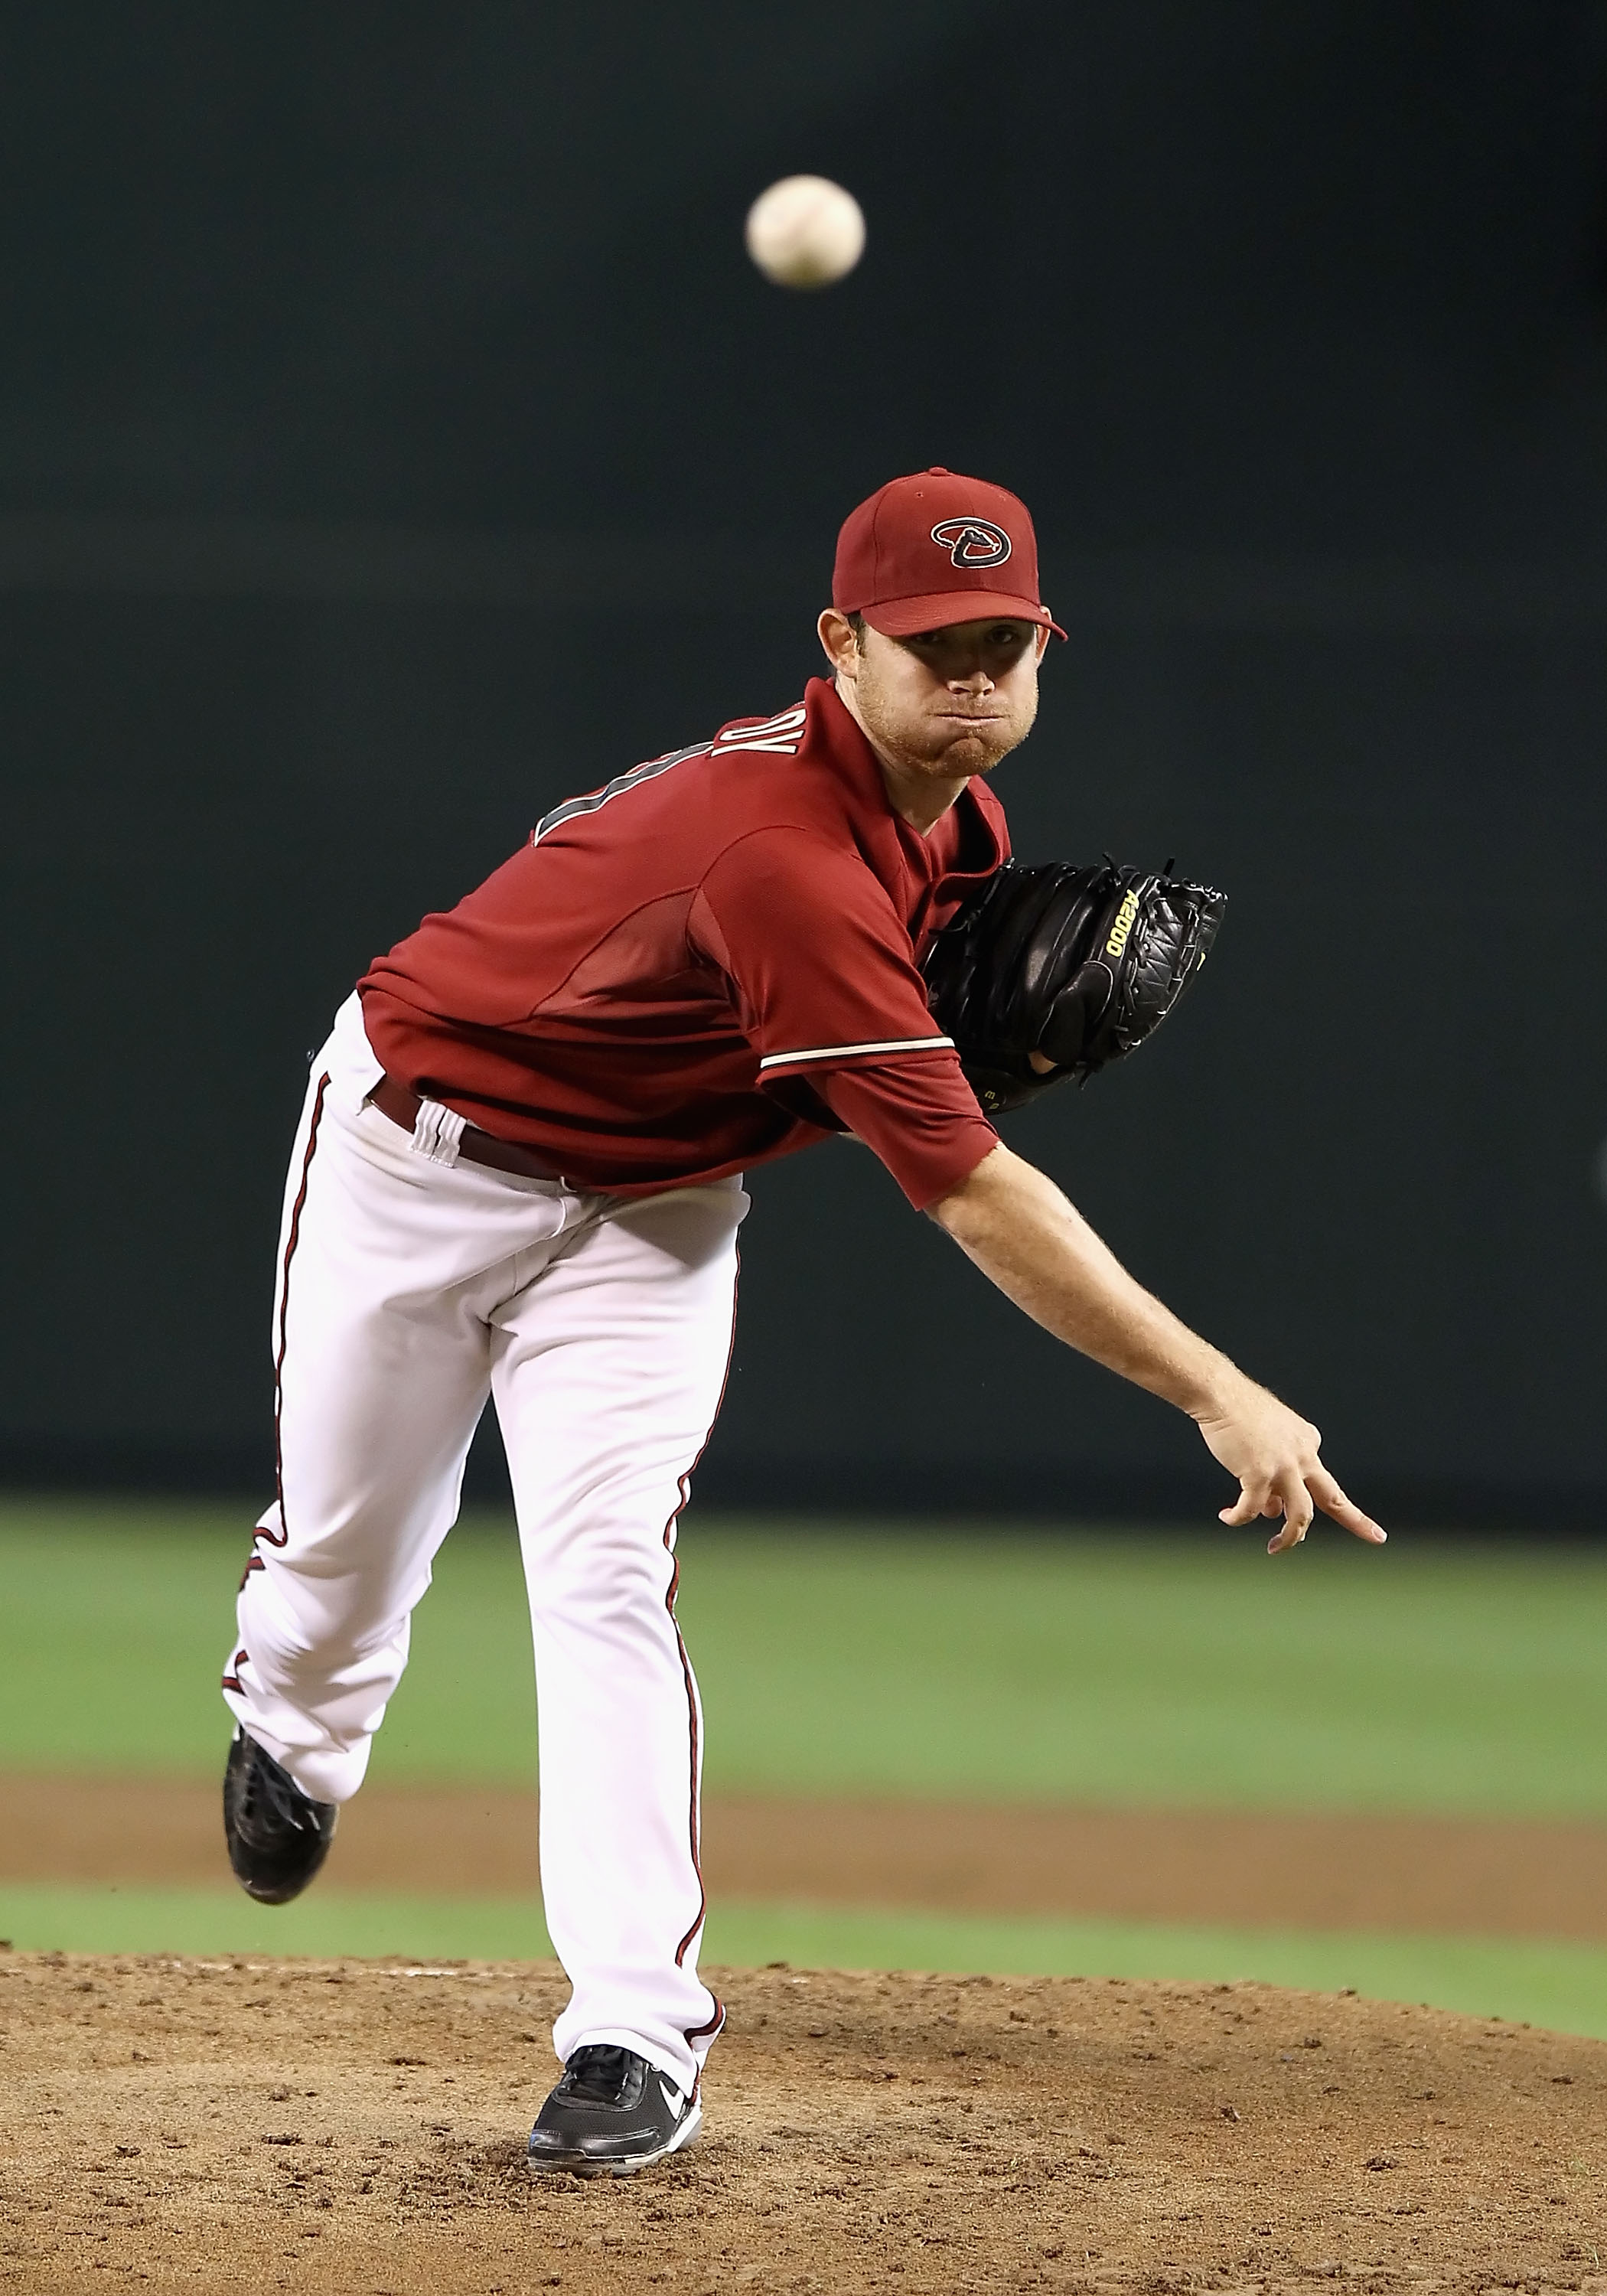 PHOENIX - SEPTEMBER 06:  Starting pitcher Ian Kennedy #31 of the Arizona Diamondbacks pitches against the San Francisco Giants during the Major League Baseball game at Chase Field on September 6, 2010 in Phoenix, Arizona.  The Giants defeated the Diamondb